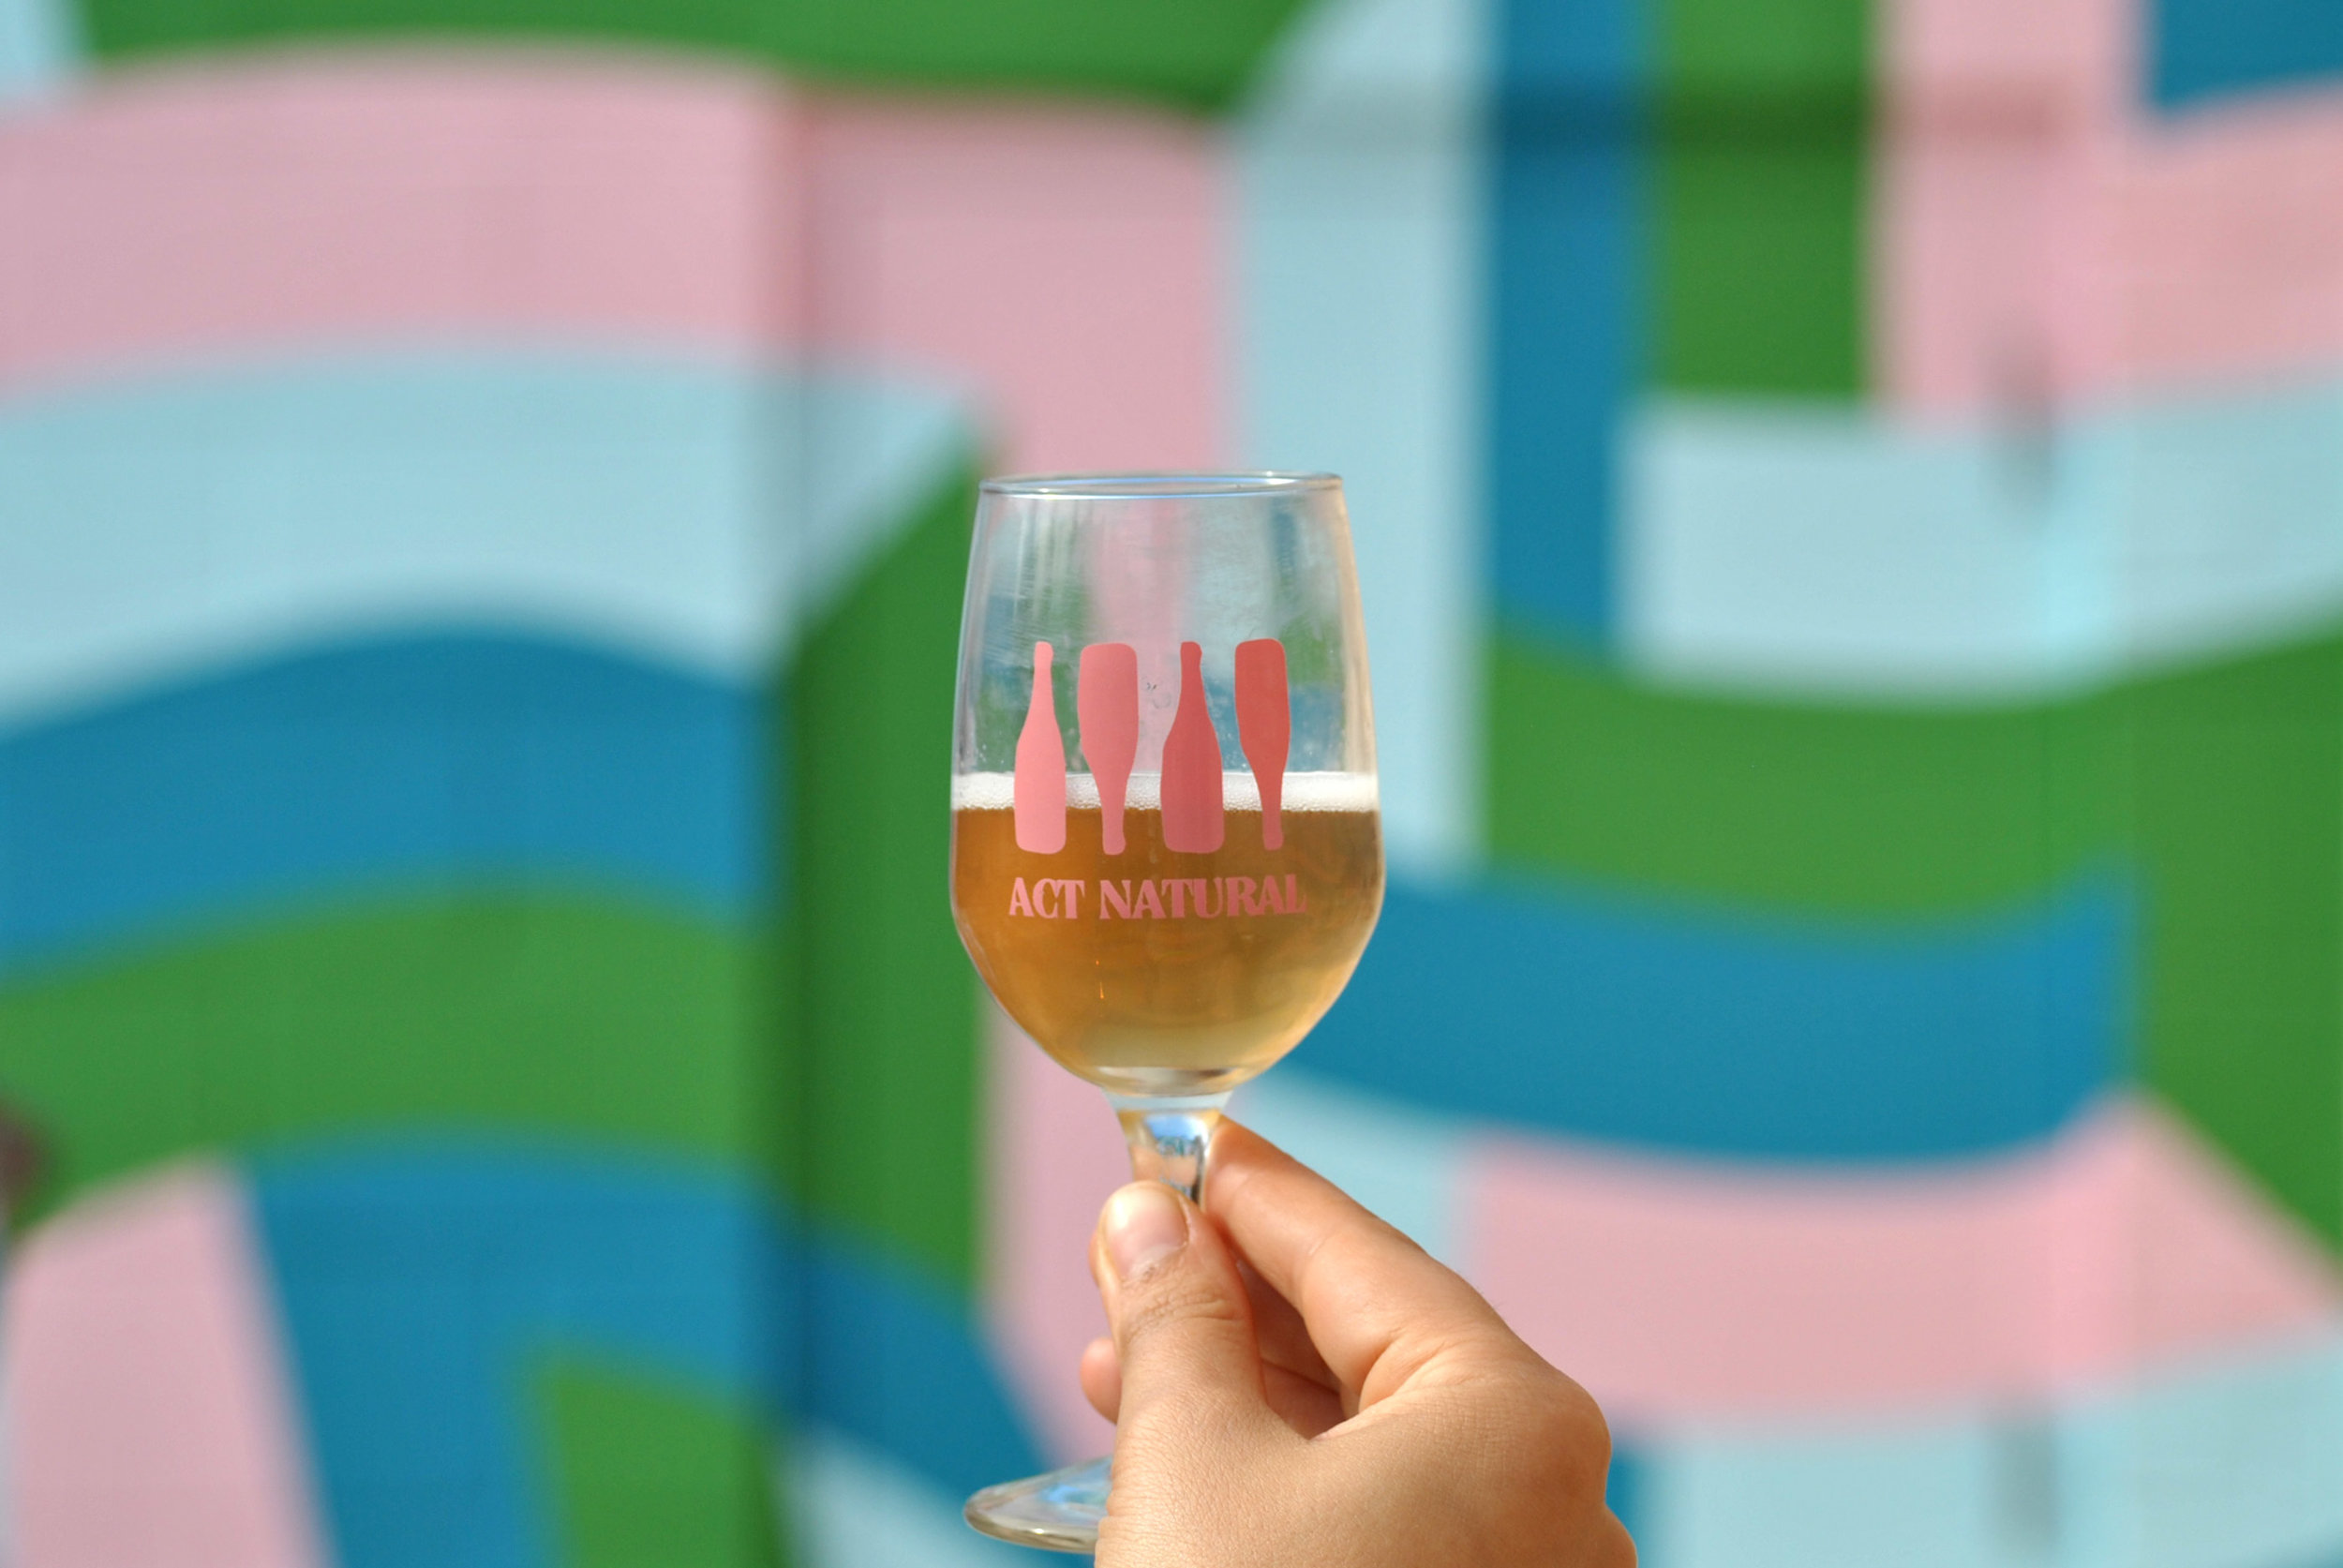 Our Top 5 Beers from 'Act Natural' Fest